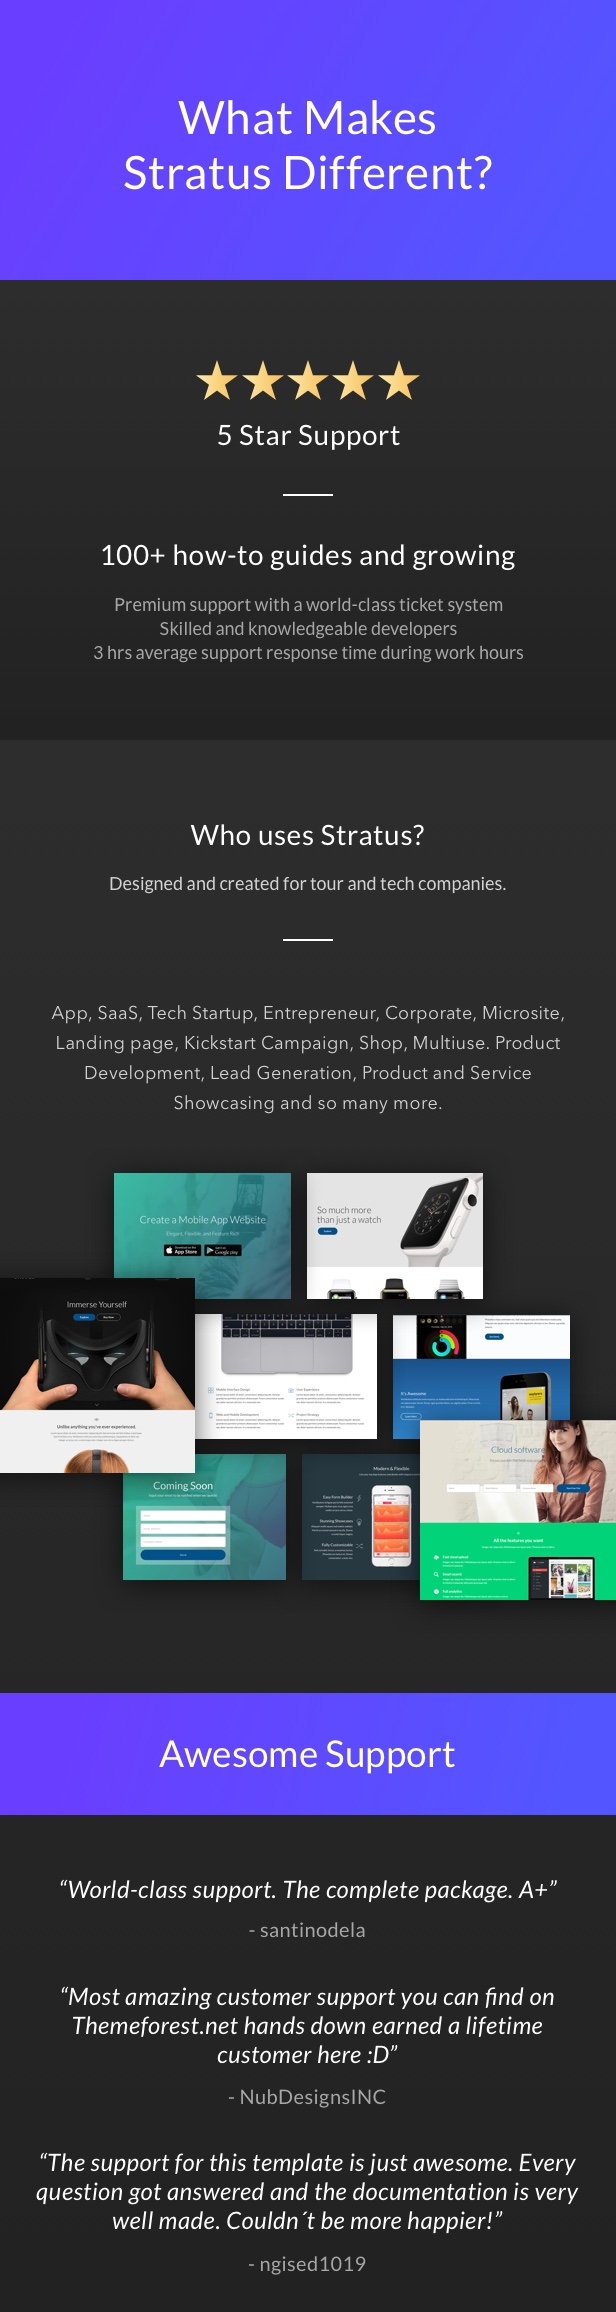 App, SaaS & Software Startup Tech Theme - Stratus - 7